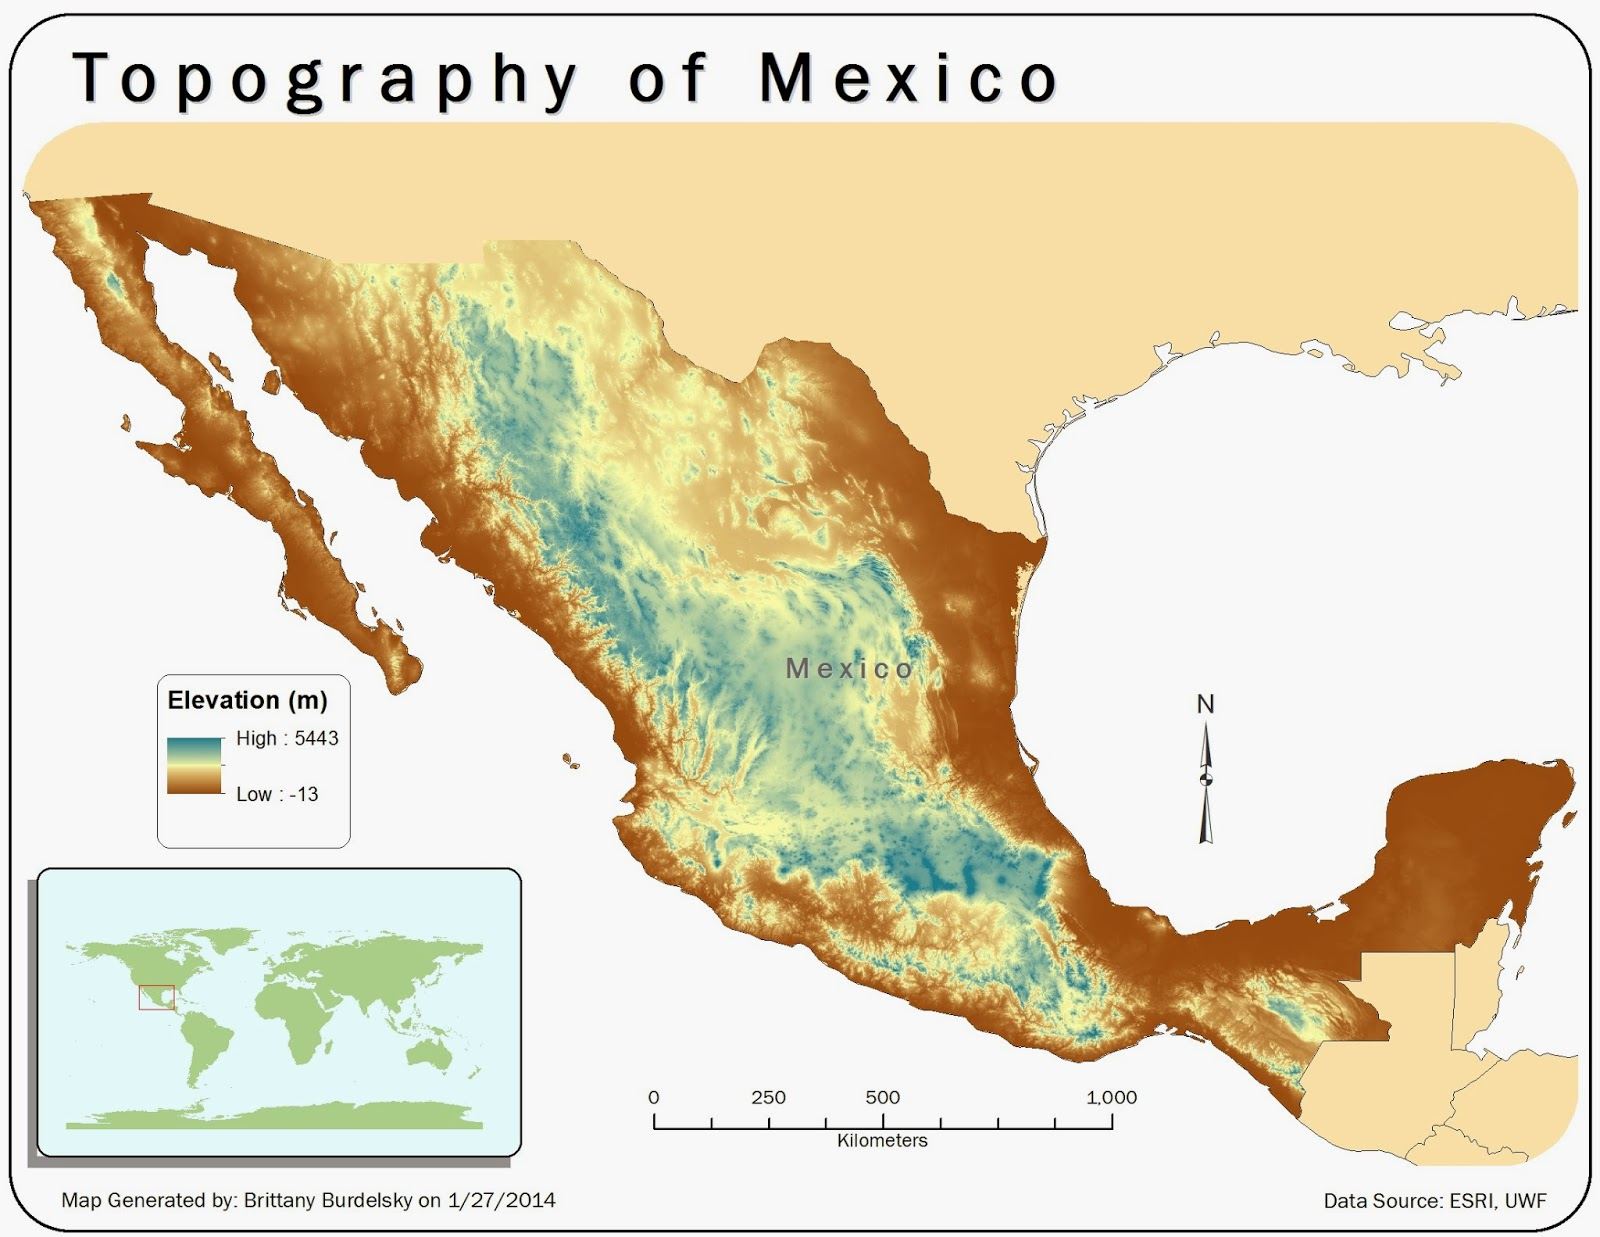 the map shows the topography of mexico using a raster data set with a stretched symbology color scheme